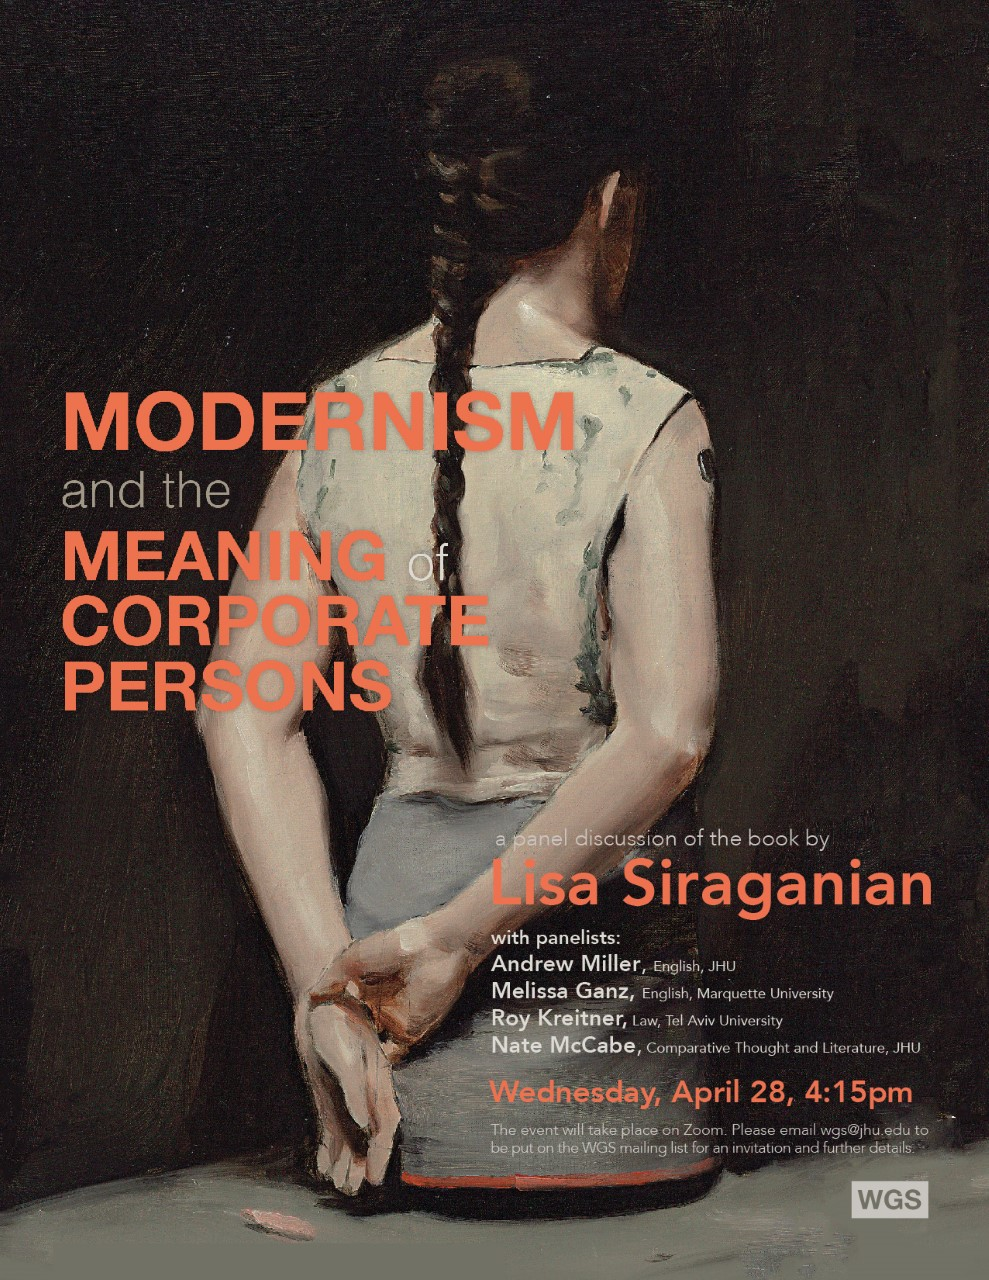 April 28, 4:15pm: A Panel Discussion of Lisa Siraganian's 'Modernism and the Meaning of Corporate Persons'